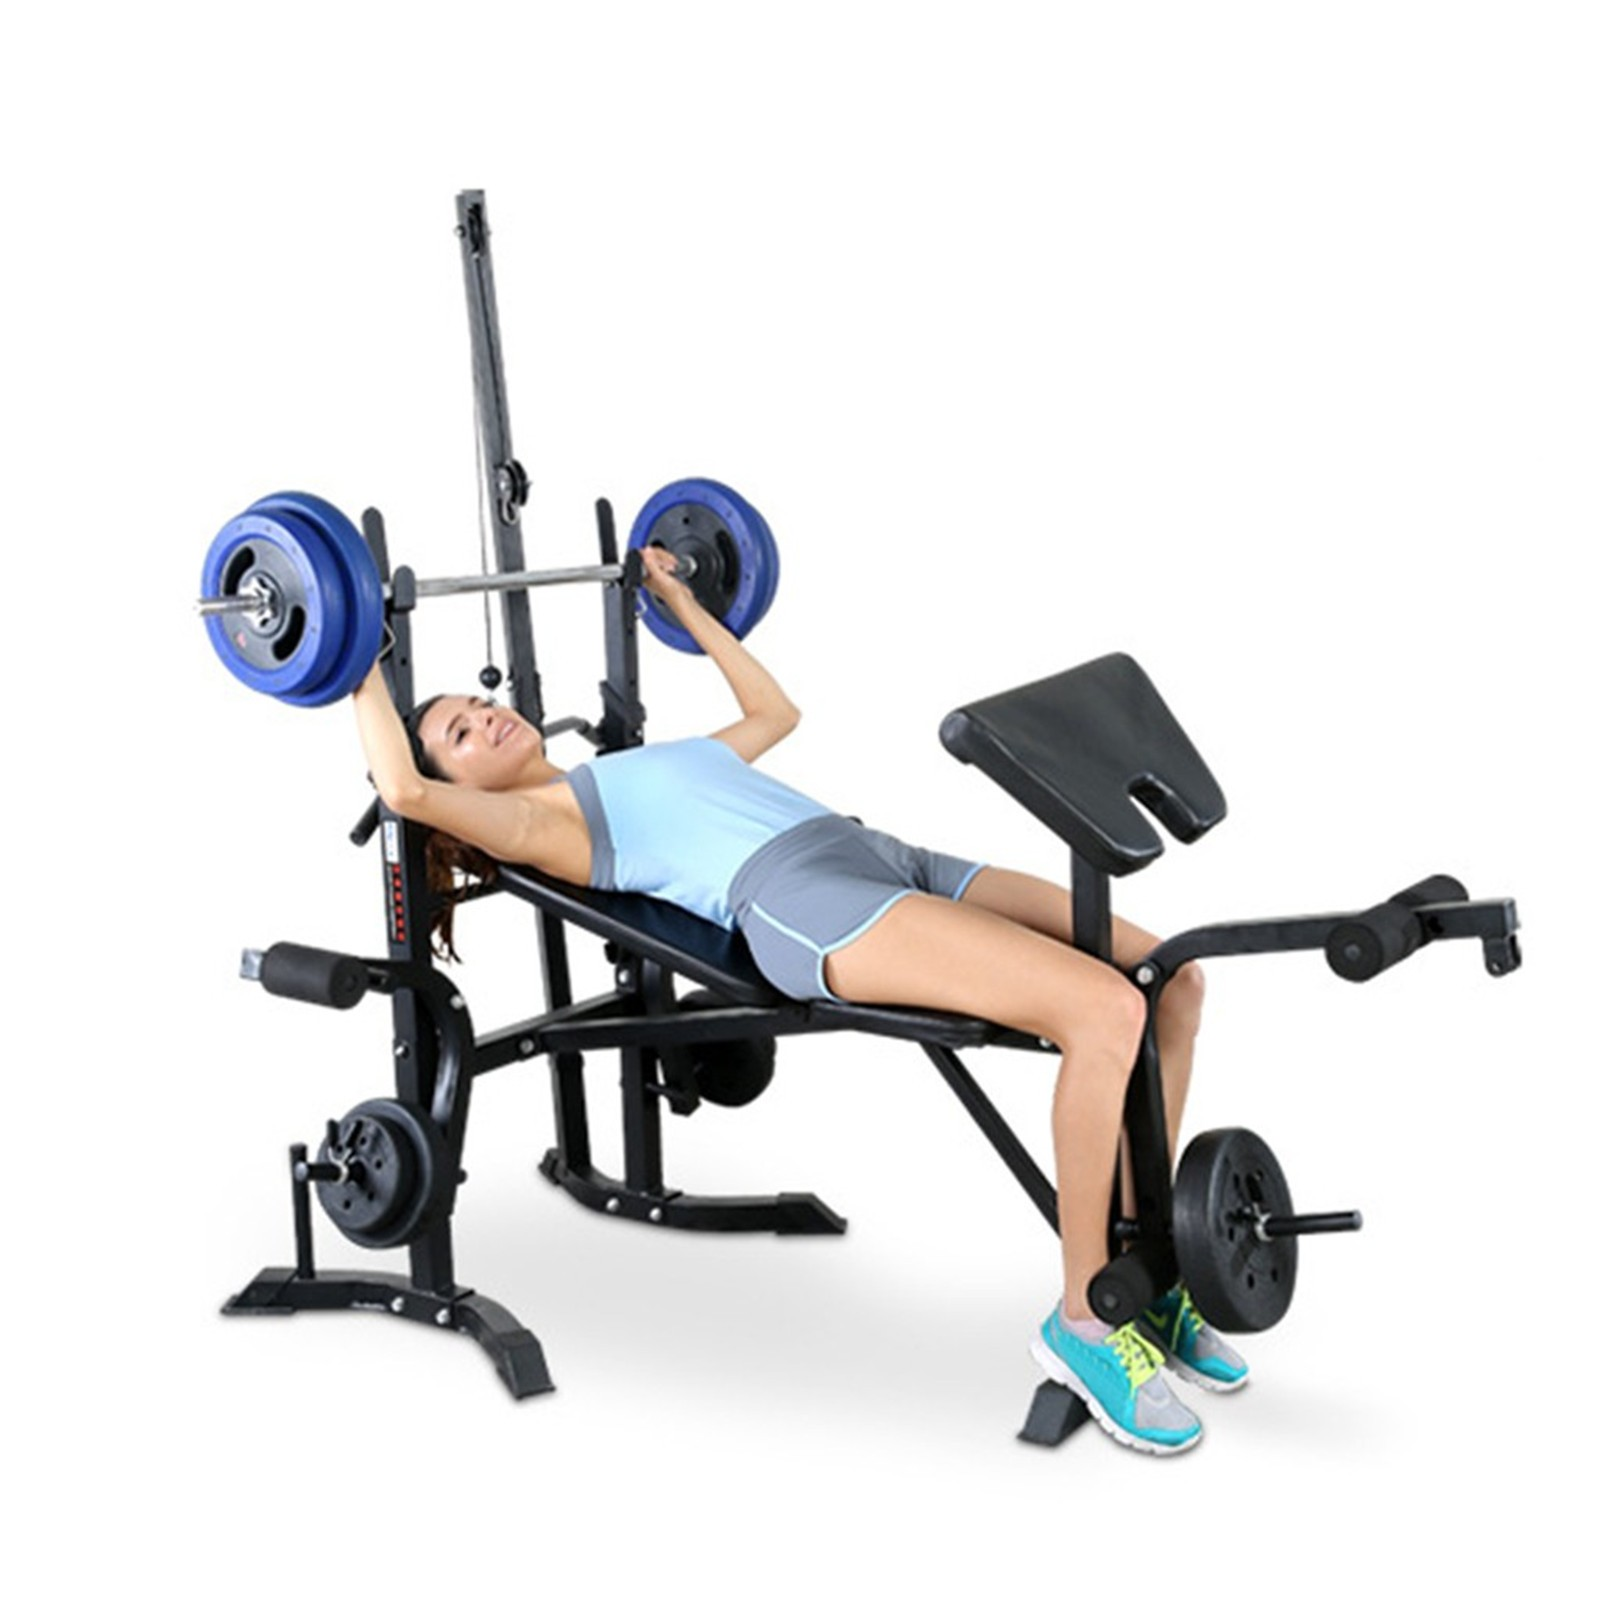 Adjustable Weight Benche Set with Squat Rack,Olympic Weight Benches Multifunctional Weight-Lifting Bed Weight-Lifting Machine Fitness Equipment for Home//Office//Gym US Shipping